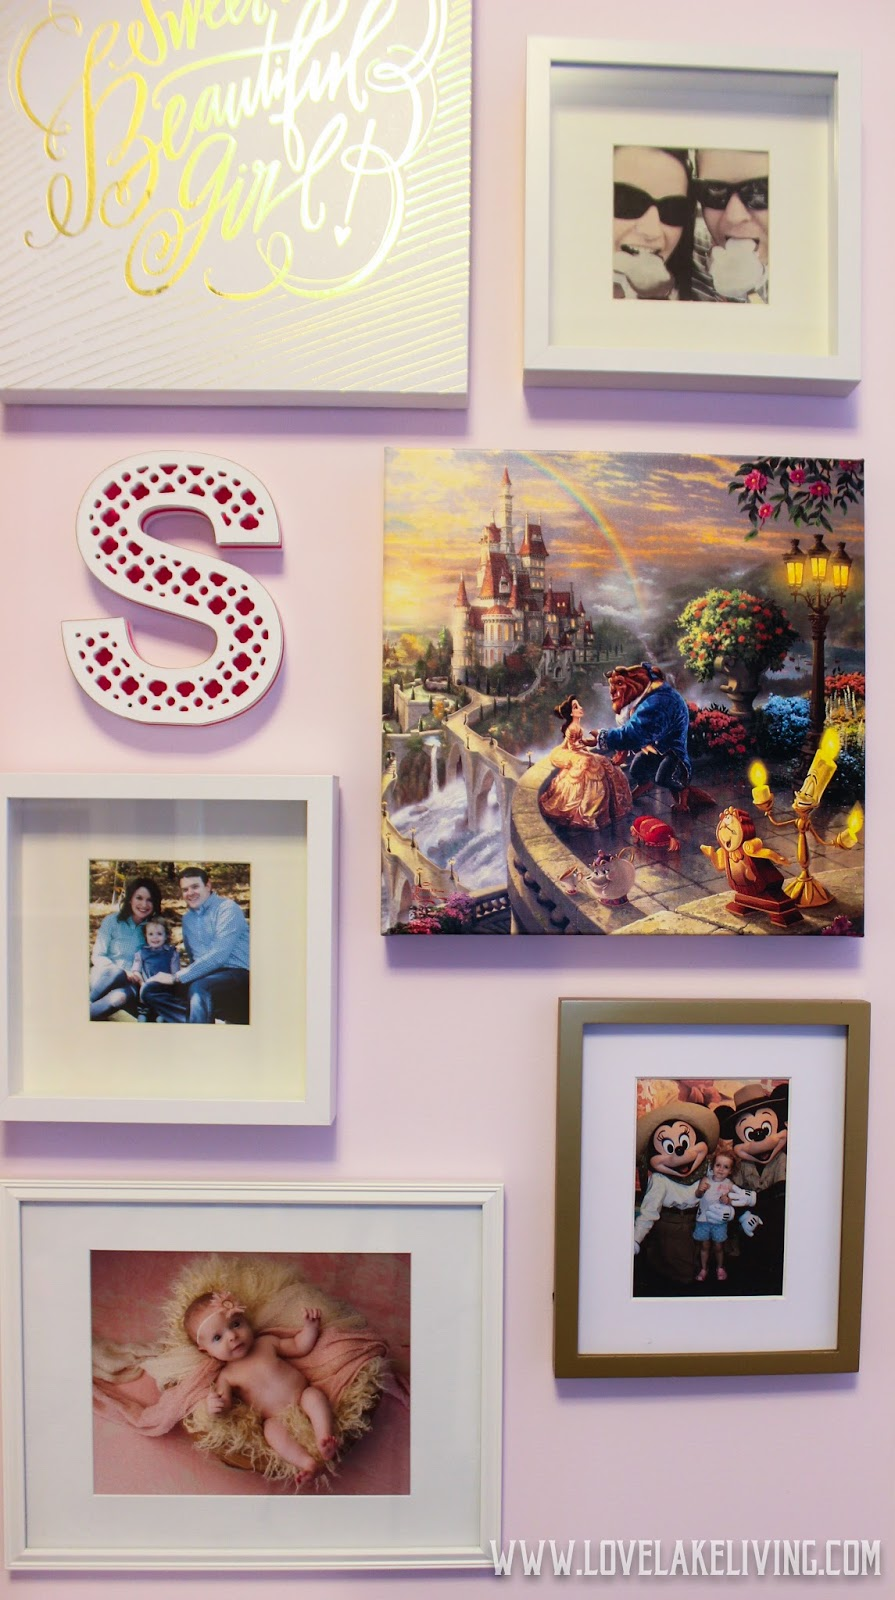 Love lake living 2017 the wall kind of has a disney theme going on and i kinda like it t minus 9 days until we see mickey again jeuxipadfo Choice Image